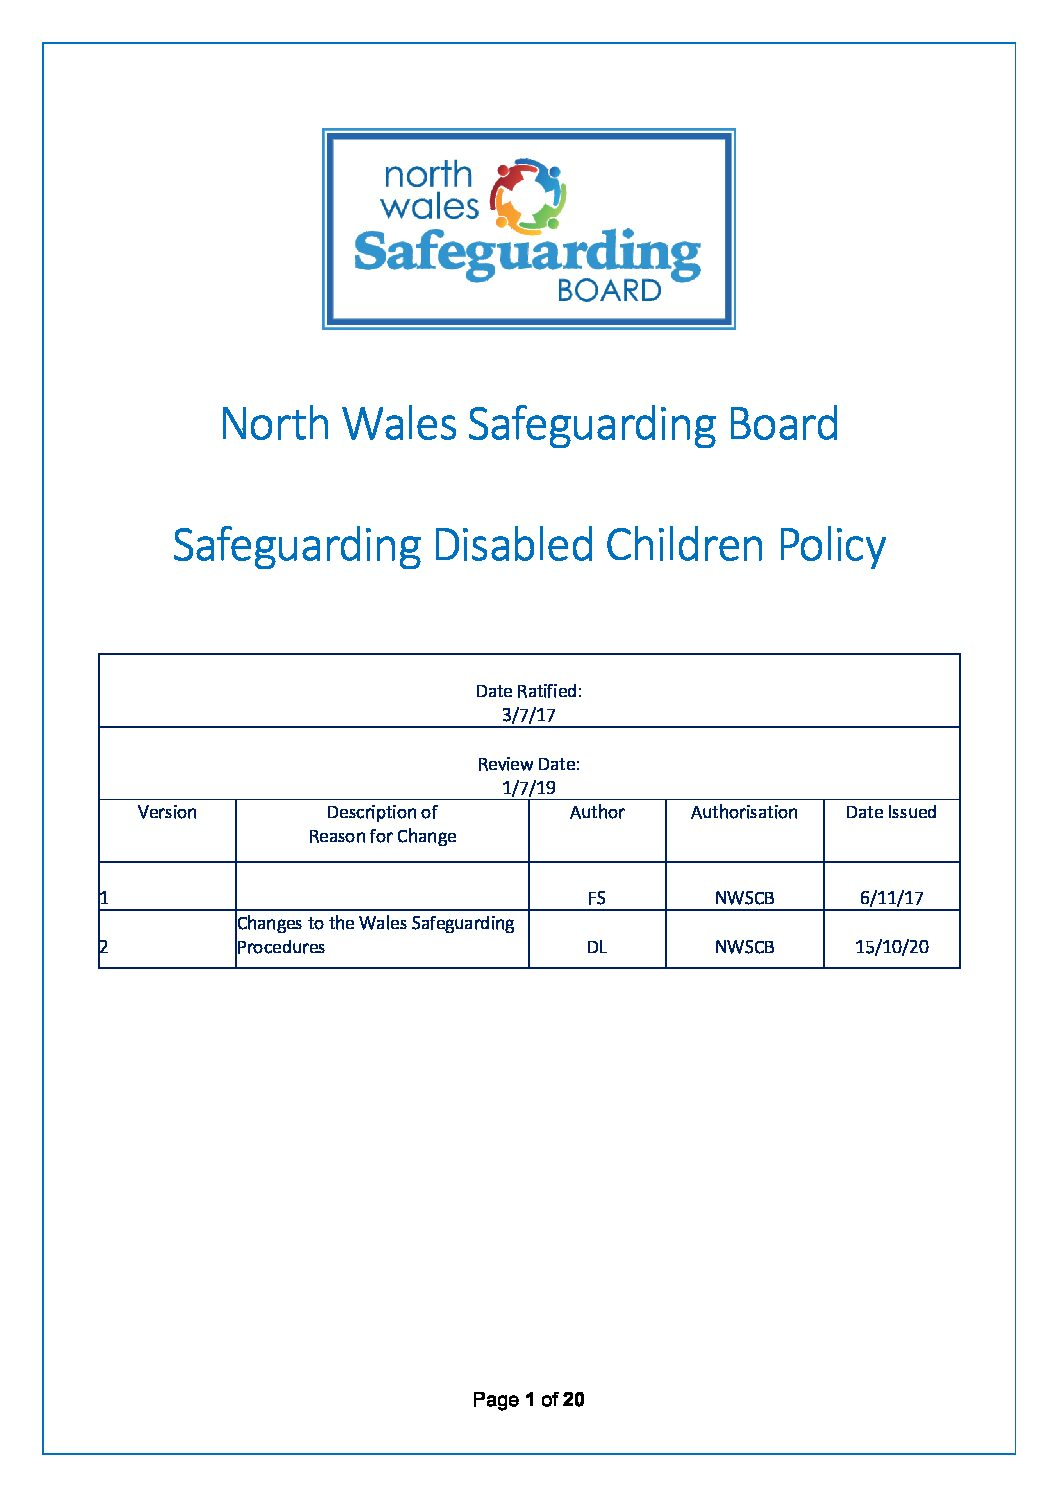 NWSCB Safeguarding Disabled Children Policy